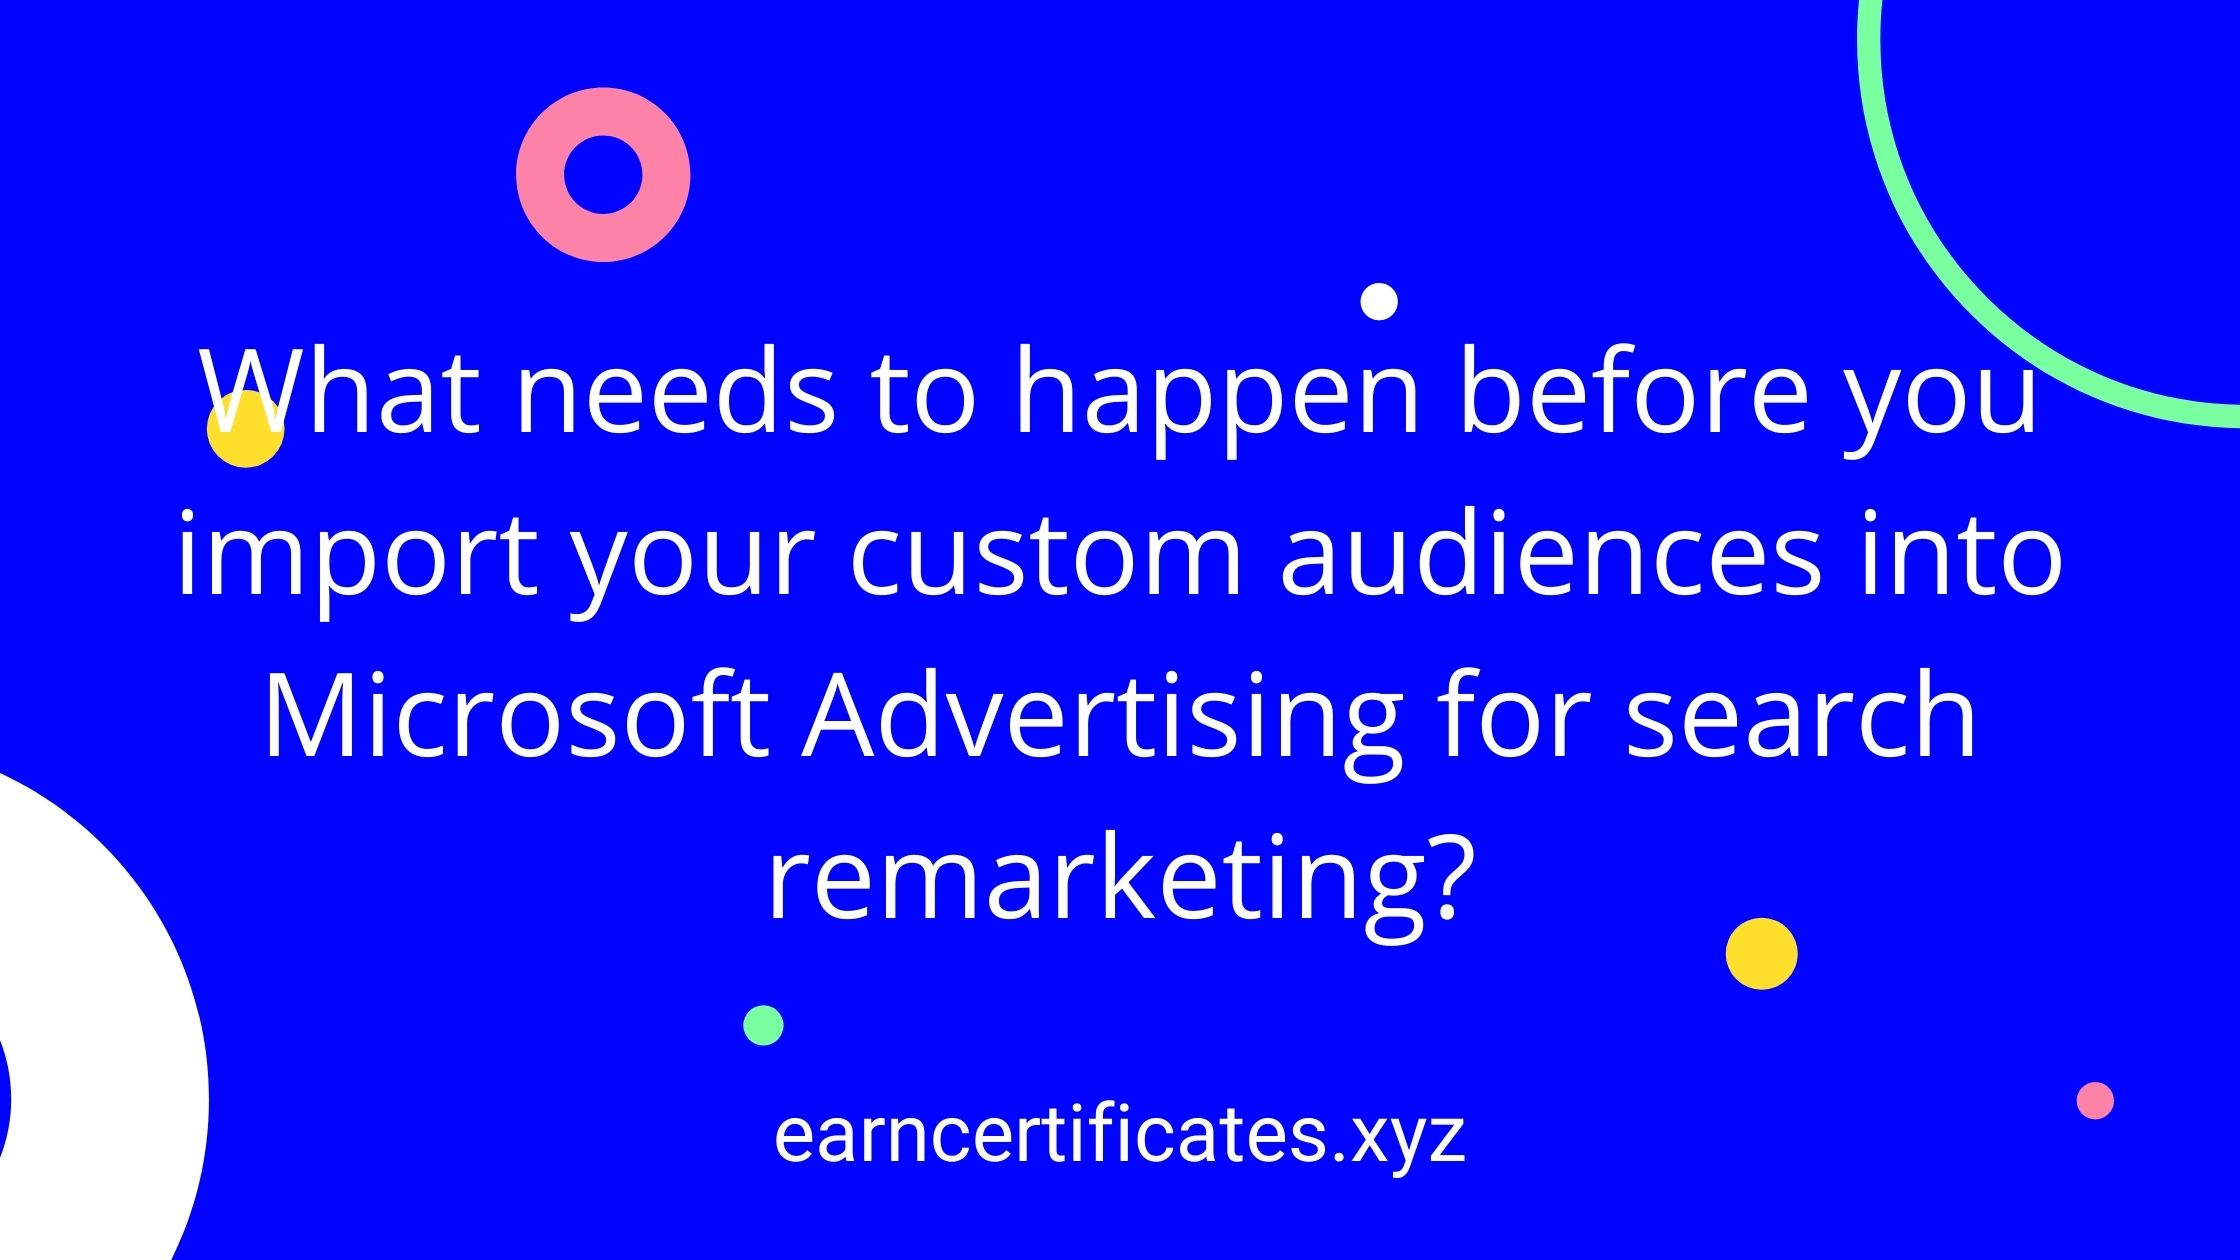 What needs to happen before you import your custom audiences into Microsoft Advertising for search remarketing?